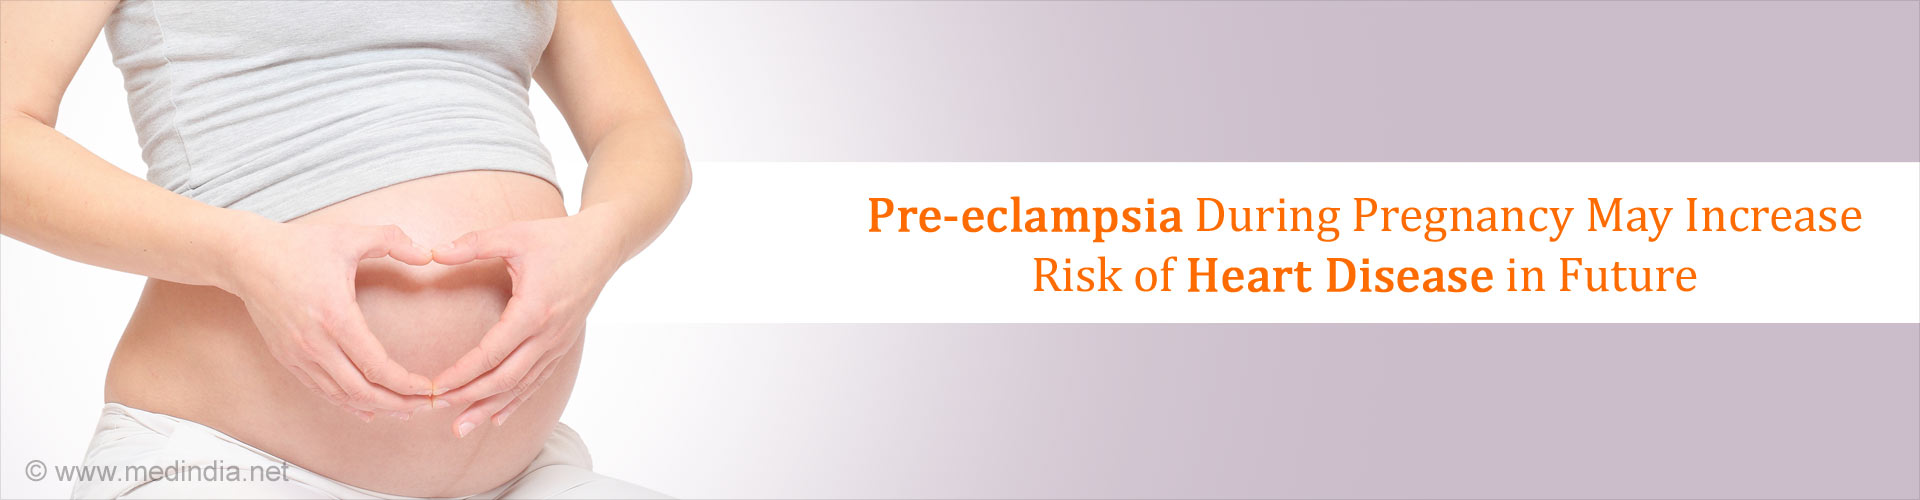 Pre-eclampsia Indicates Cardiac Dysfunction Later in Life